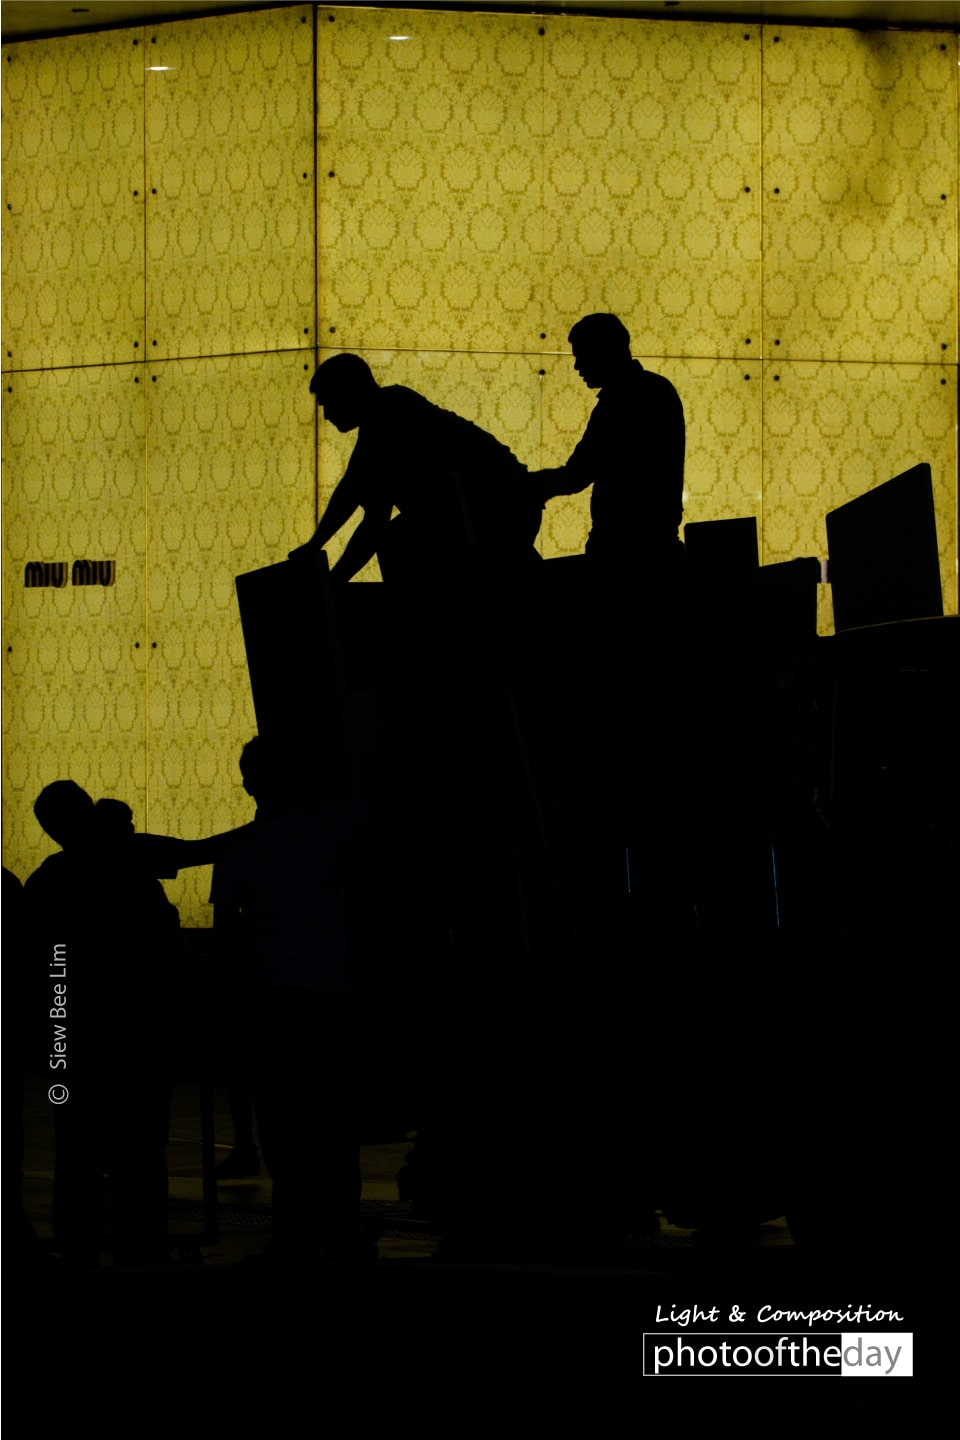 Silhouette of the Movers, by Siew Bee Lim